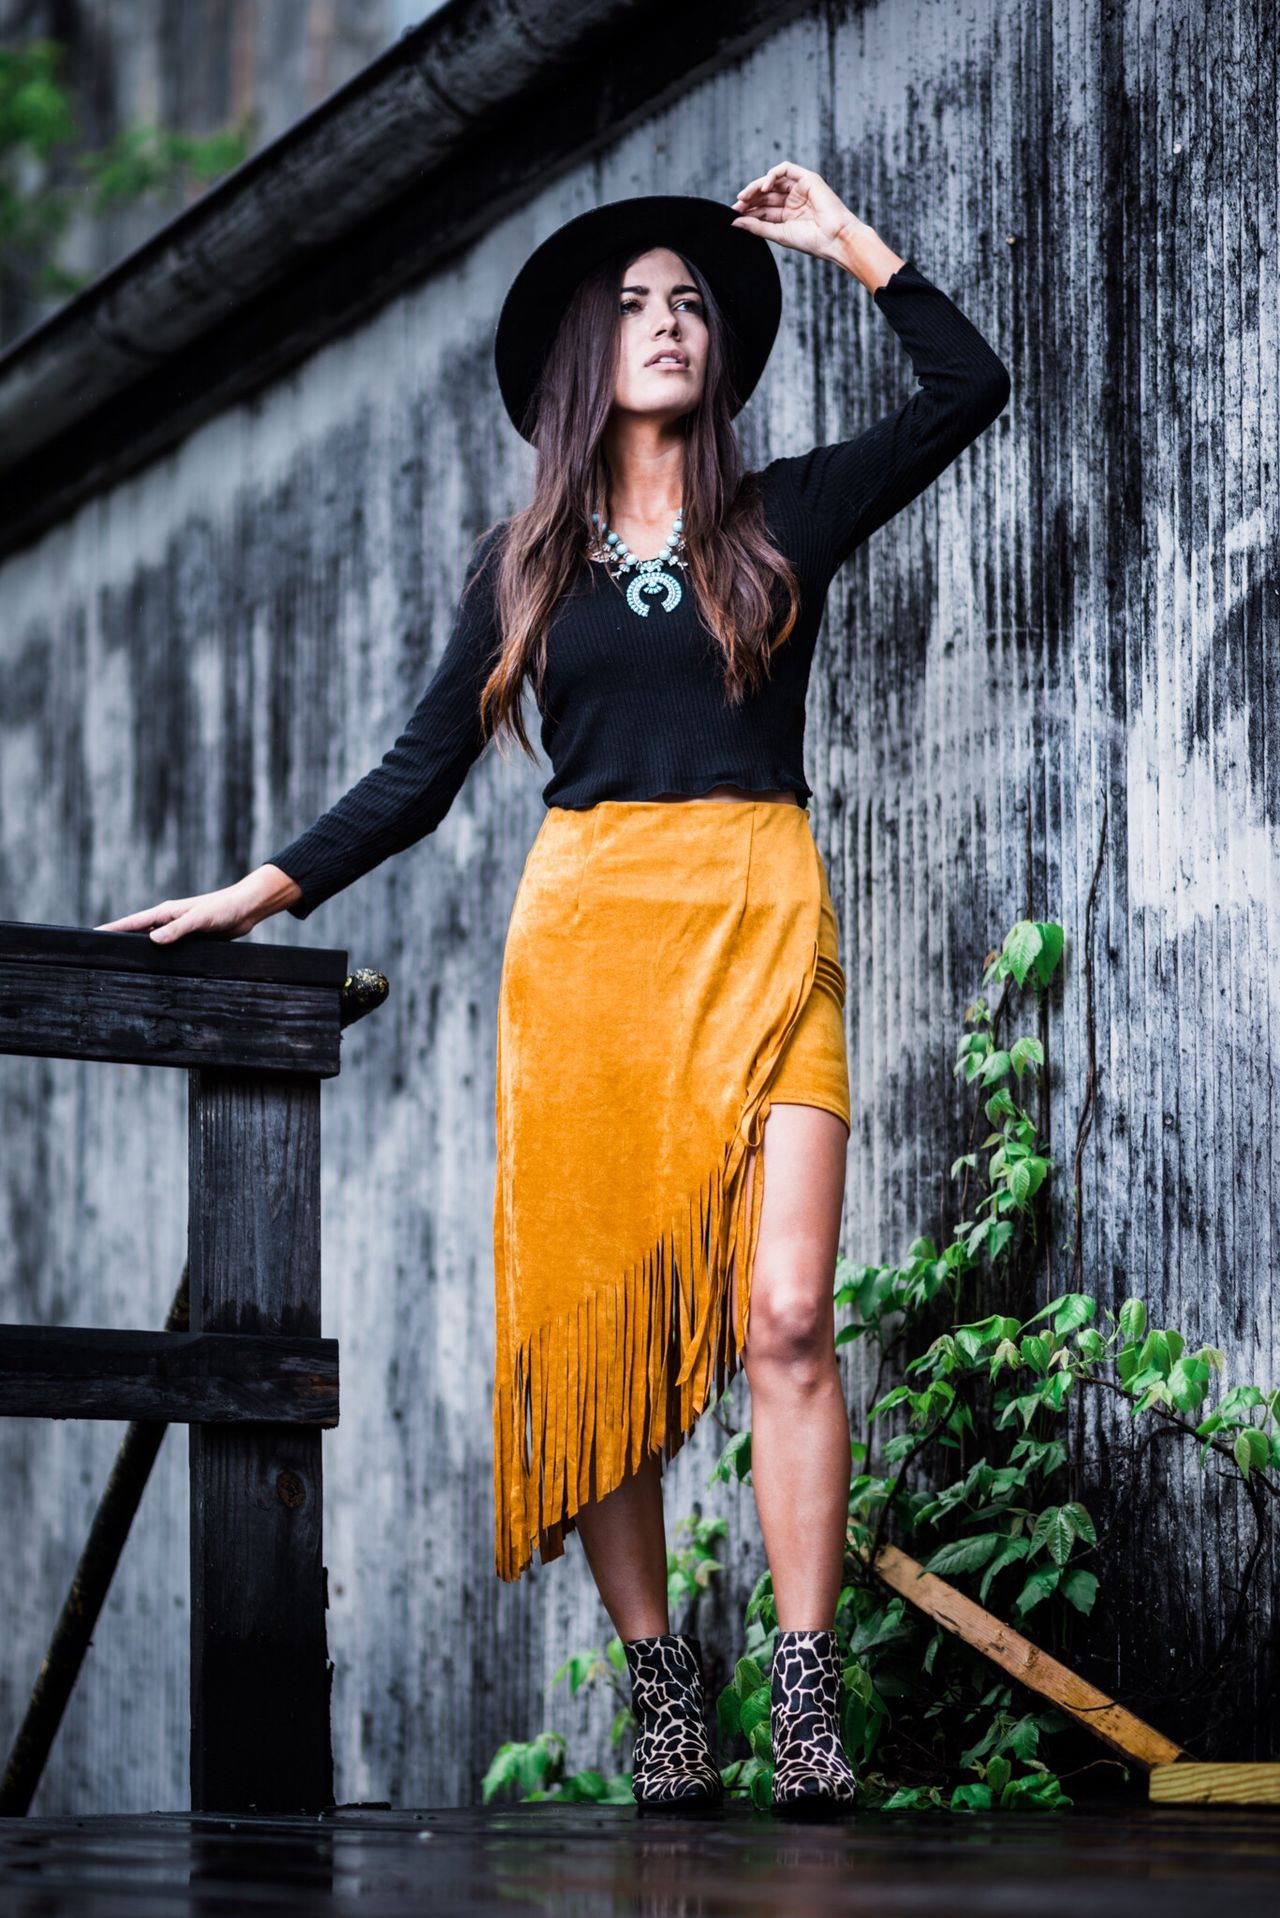 Only Women Beauty One Person Adult One Woman Only Adults Only Fashion Beautiful Woman Beautiful People Fashion Model One Young Woman Only People Young Women Women Long Hair Standing Full Length Young Adult Portrait Human Body Part Theportraitist-2017eyeemawards